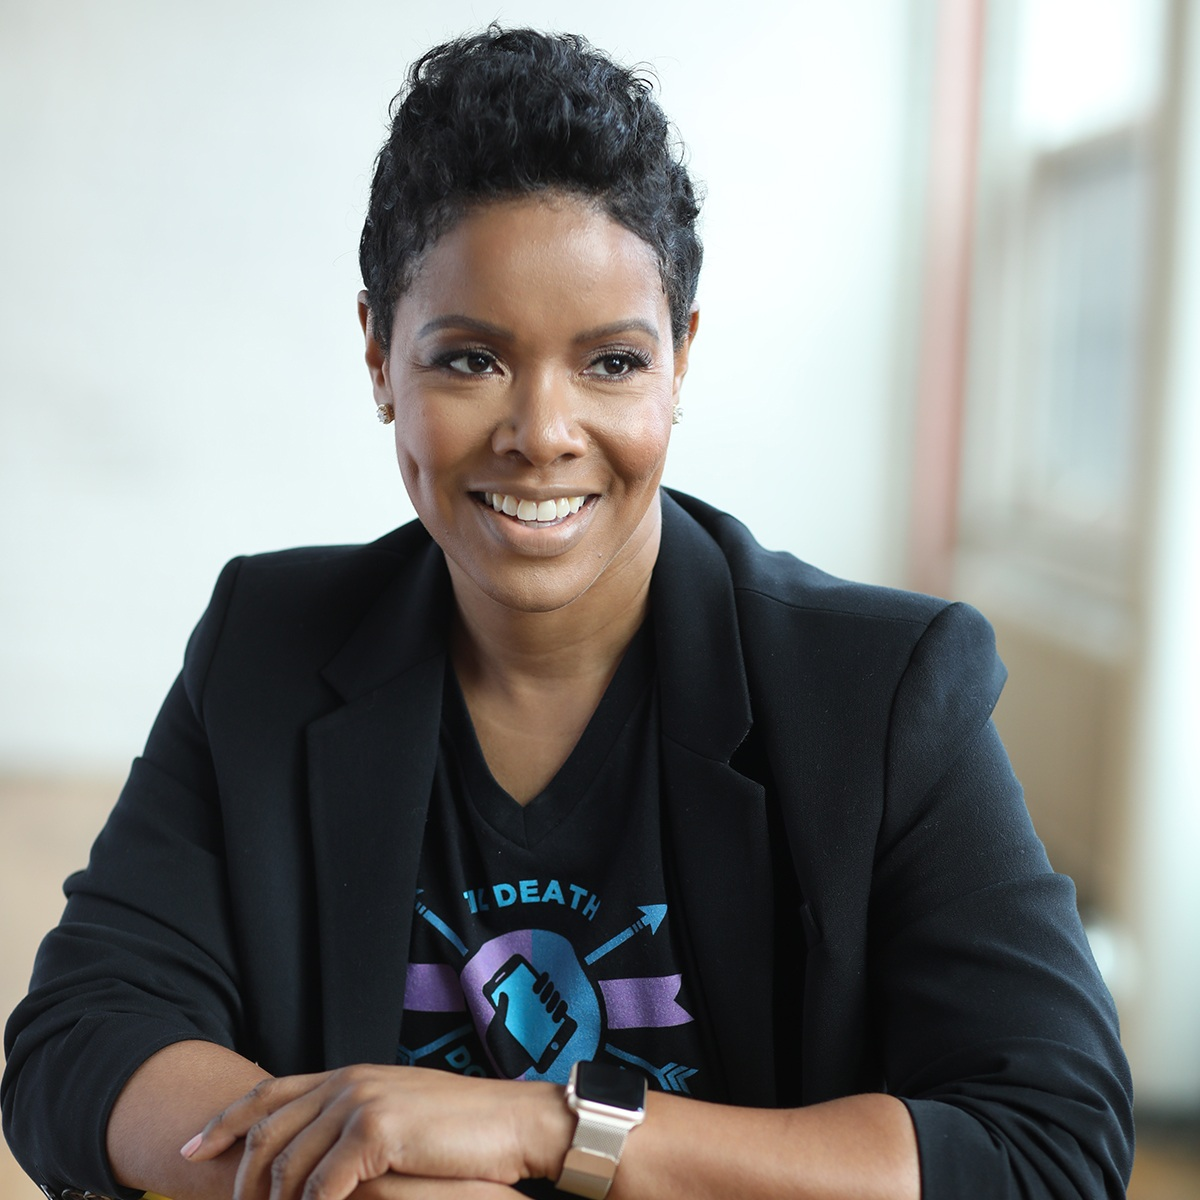 Stephanie Humphrey sits smiling at the camera. She has short black hair and is wearing a black blazer over a black t-shirt.